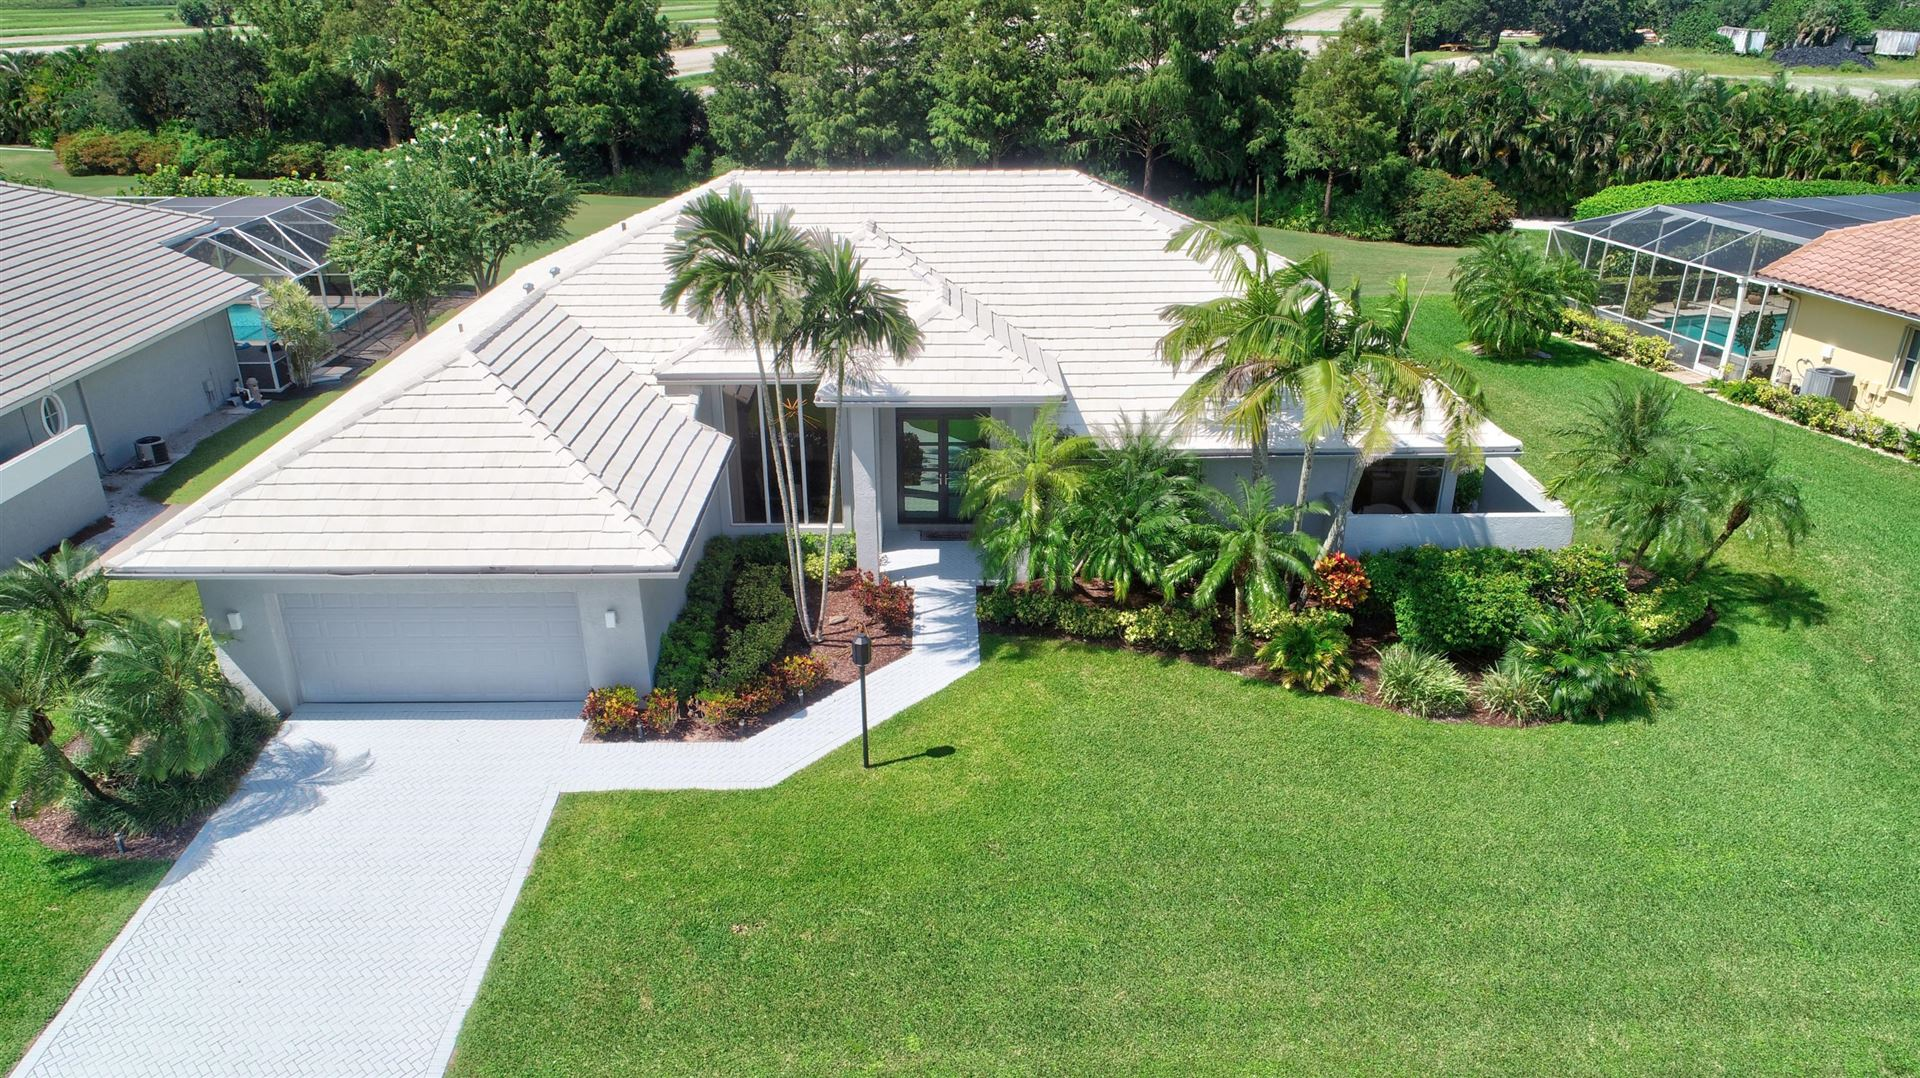 Photo for 10446 Stonebridge Boulevard, Boca Raton, FL 33498 (MLS # RX-10560364)